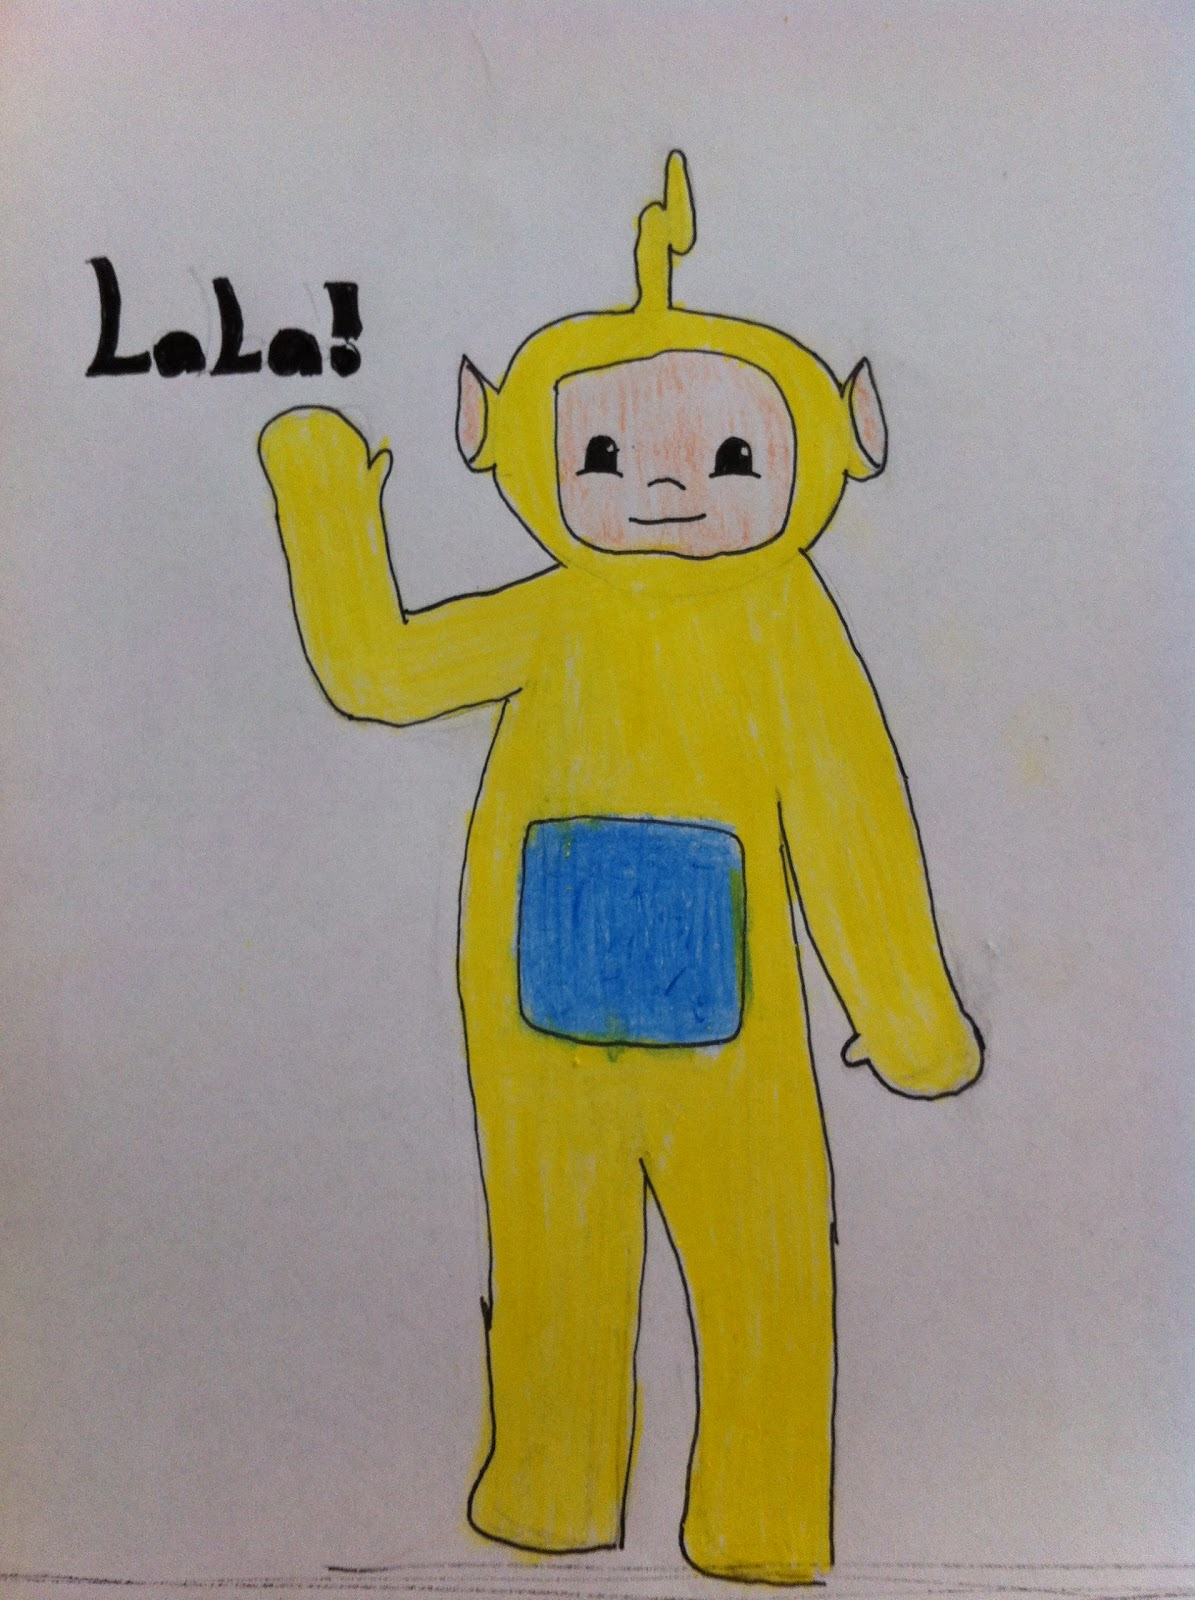 1195x1600 Chantellelikesart ) How To Draw Lala (From The Teletubbies)